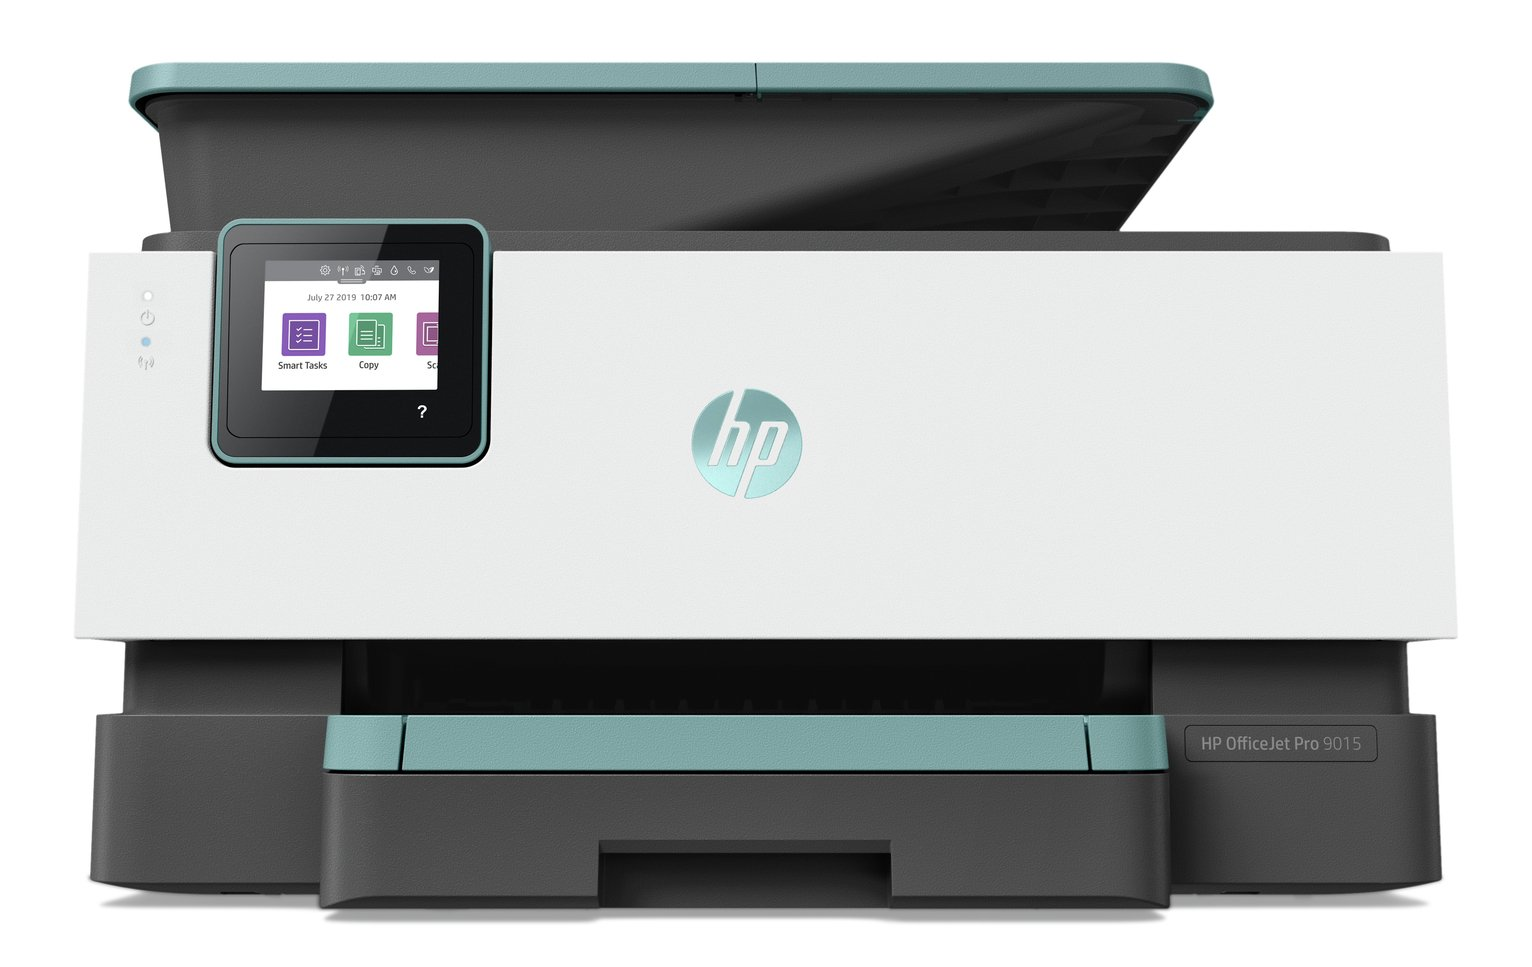 HP OfficeJet Pro 9015 Wireless Printer & 2 Month Instant Ink